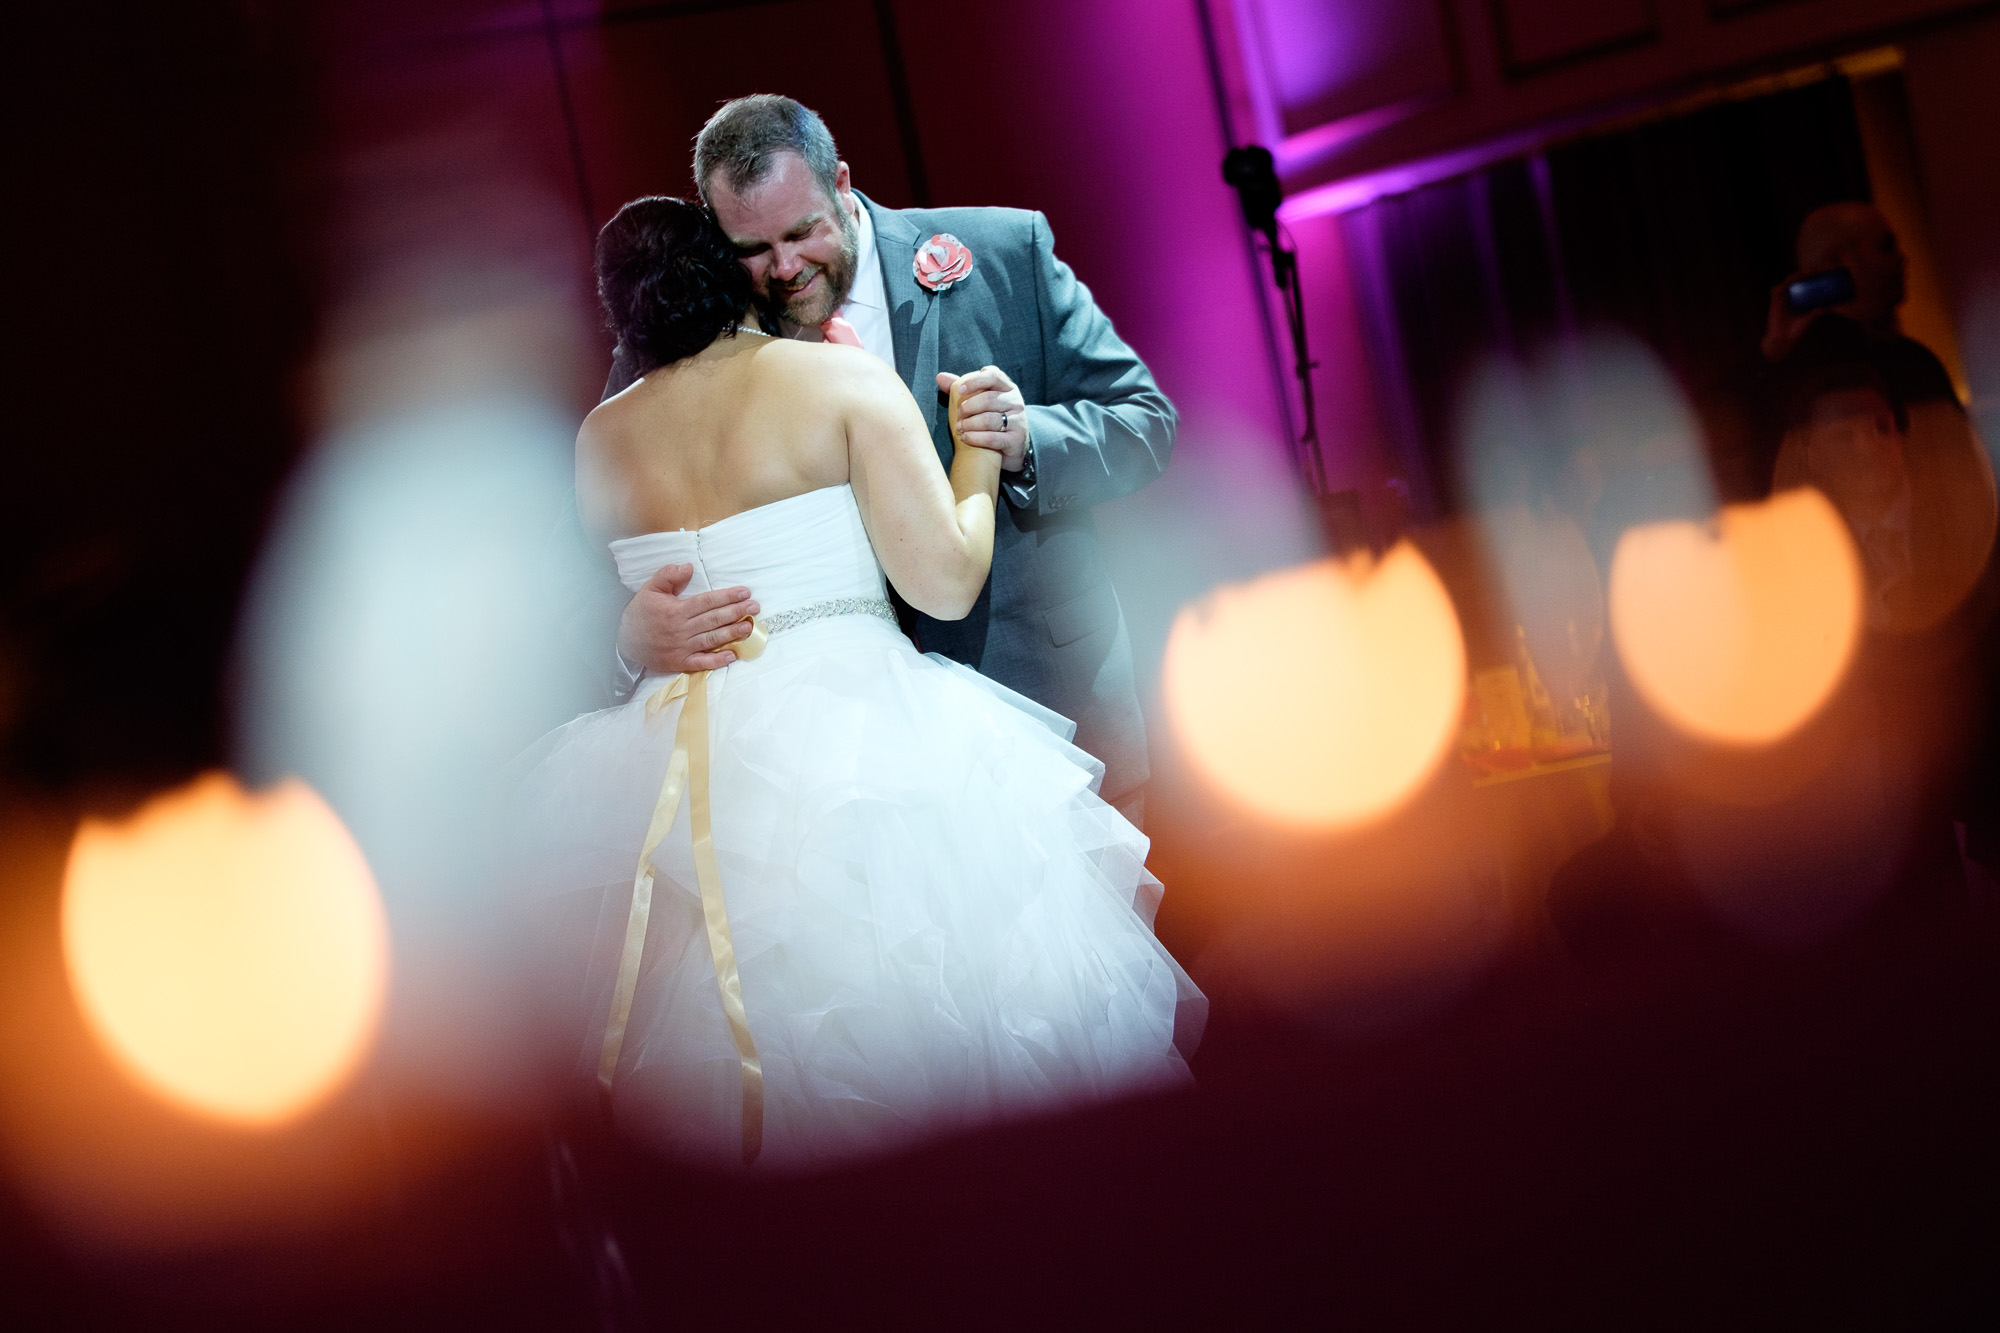 Melanie & David enjoy their first dance during their wedding reception at the Toscana Banquet Hall.